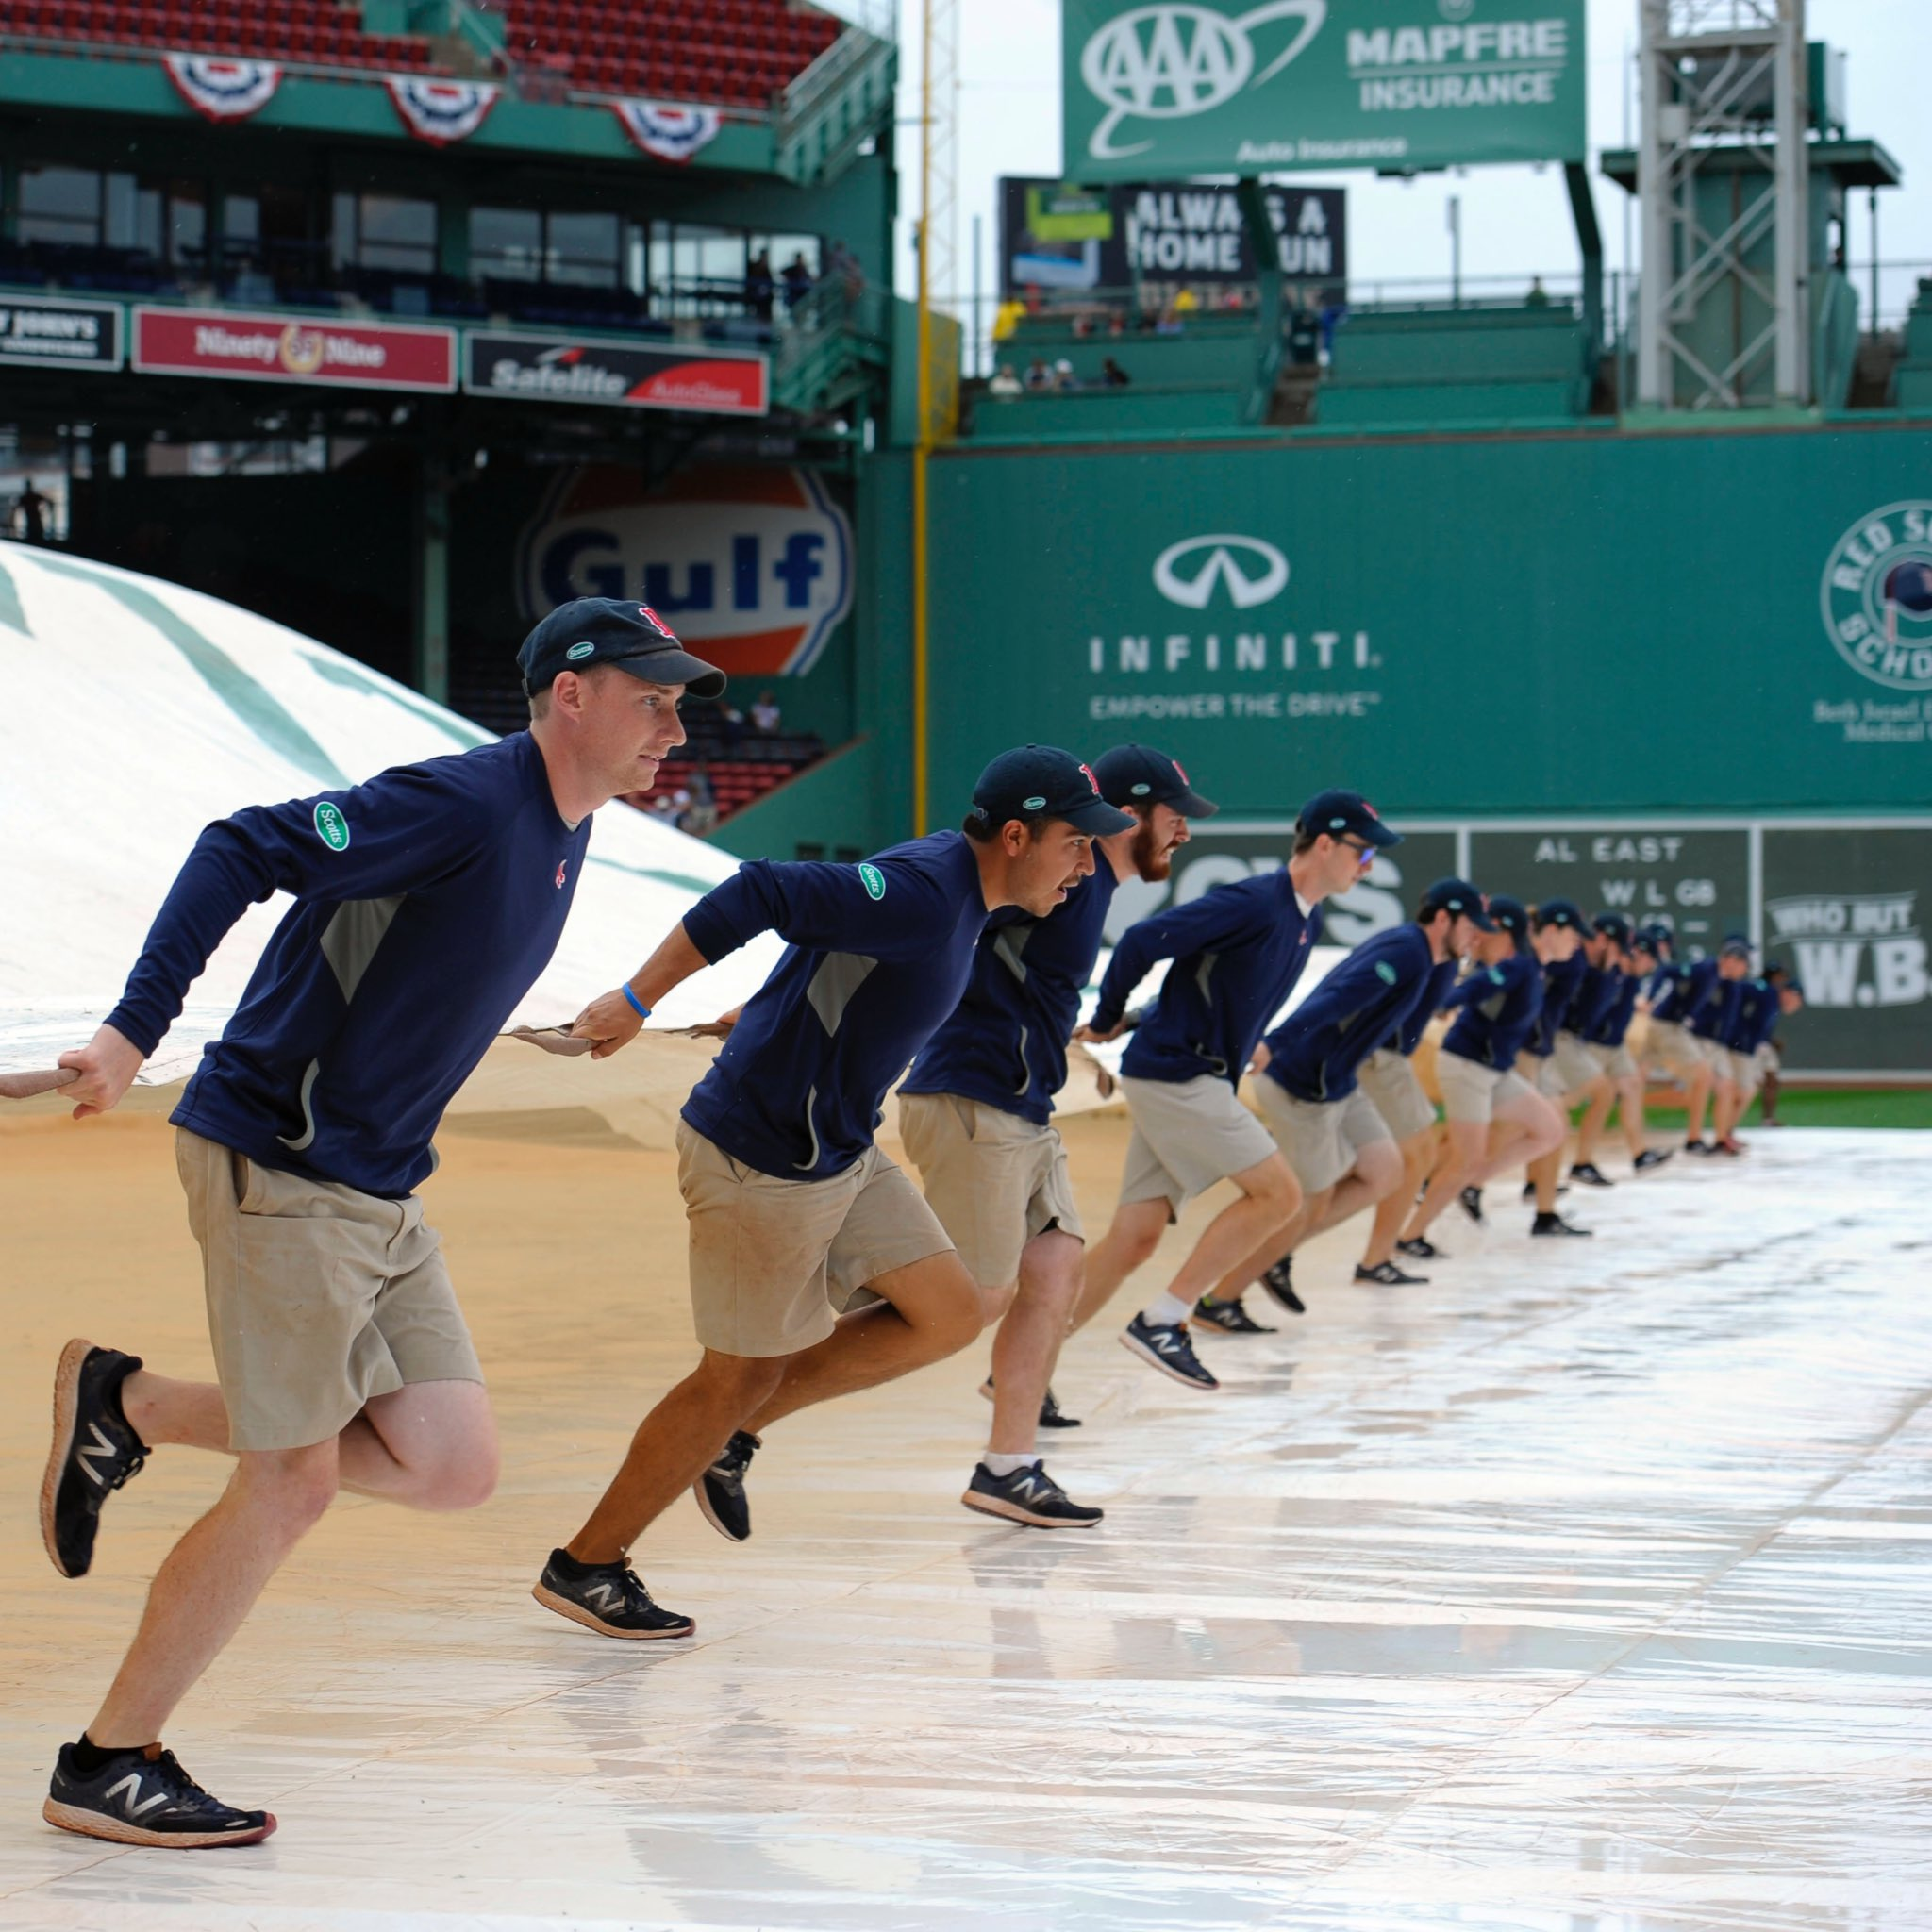 Tarp-free and playing at 1:08 ET!   �� @fenwaypark  �� @MLBONFOX  �� @WEEI, WCEC, @ESPNRadio https://t.co/NgoLL69pCQ